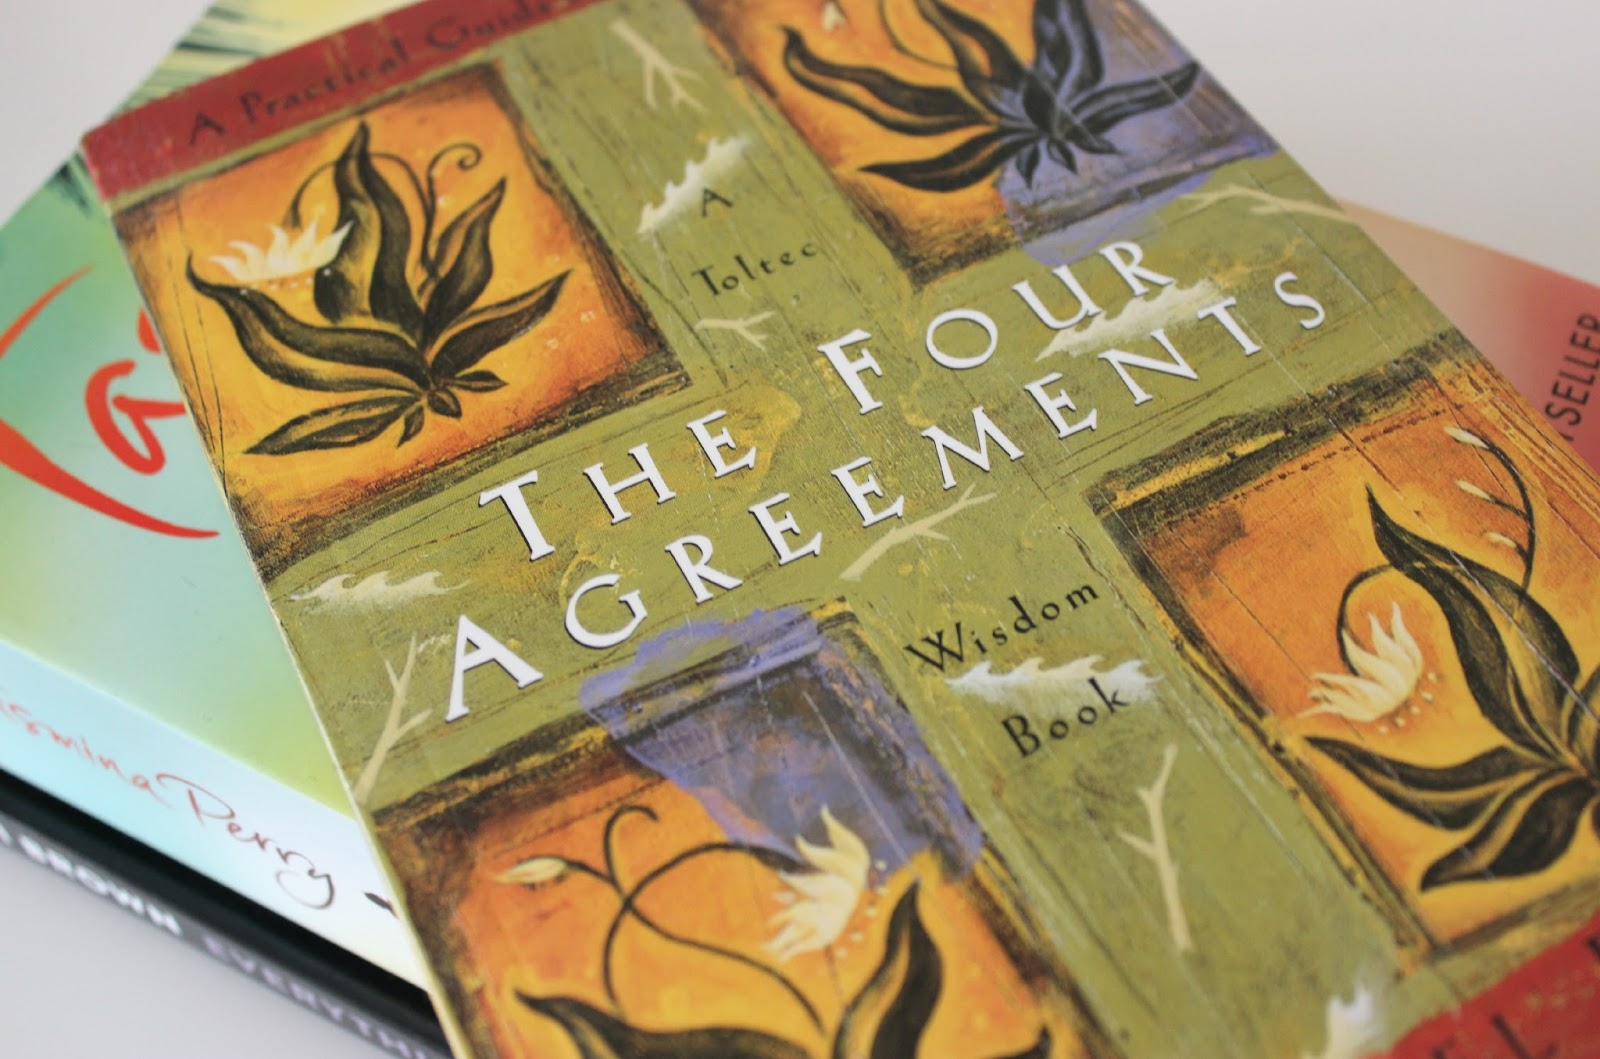 A picture of The Four Agreements: Practical Guide to Personal Freedom (Toltec Wisdom) by Don Miguel Ruiz